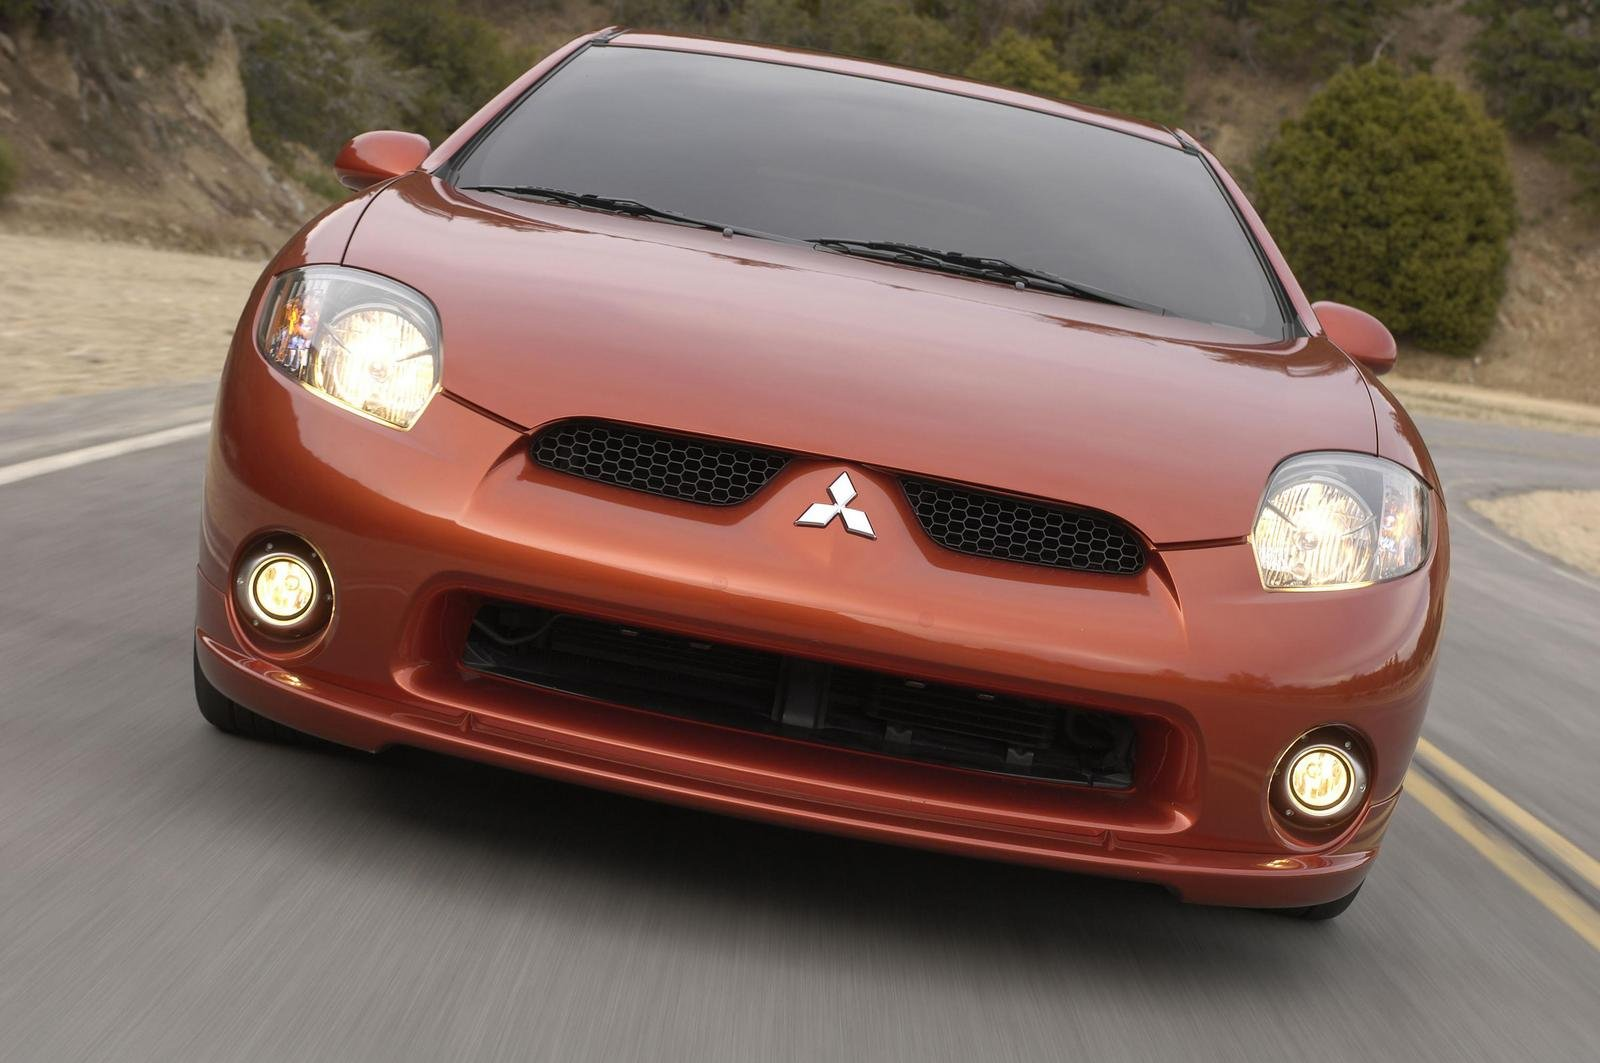 2008 mitsubishi eclipse picture 217027 car review. Black Bedroom Furniture Sets. Home Design Ideas